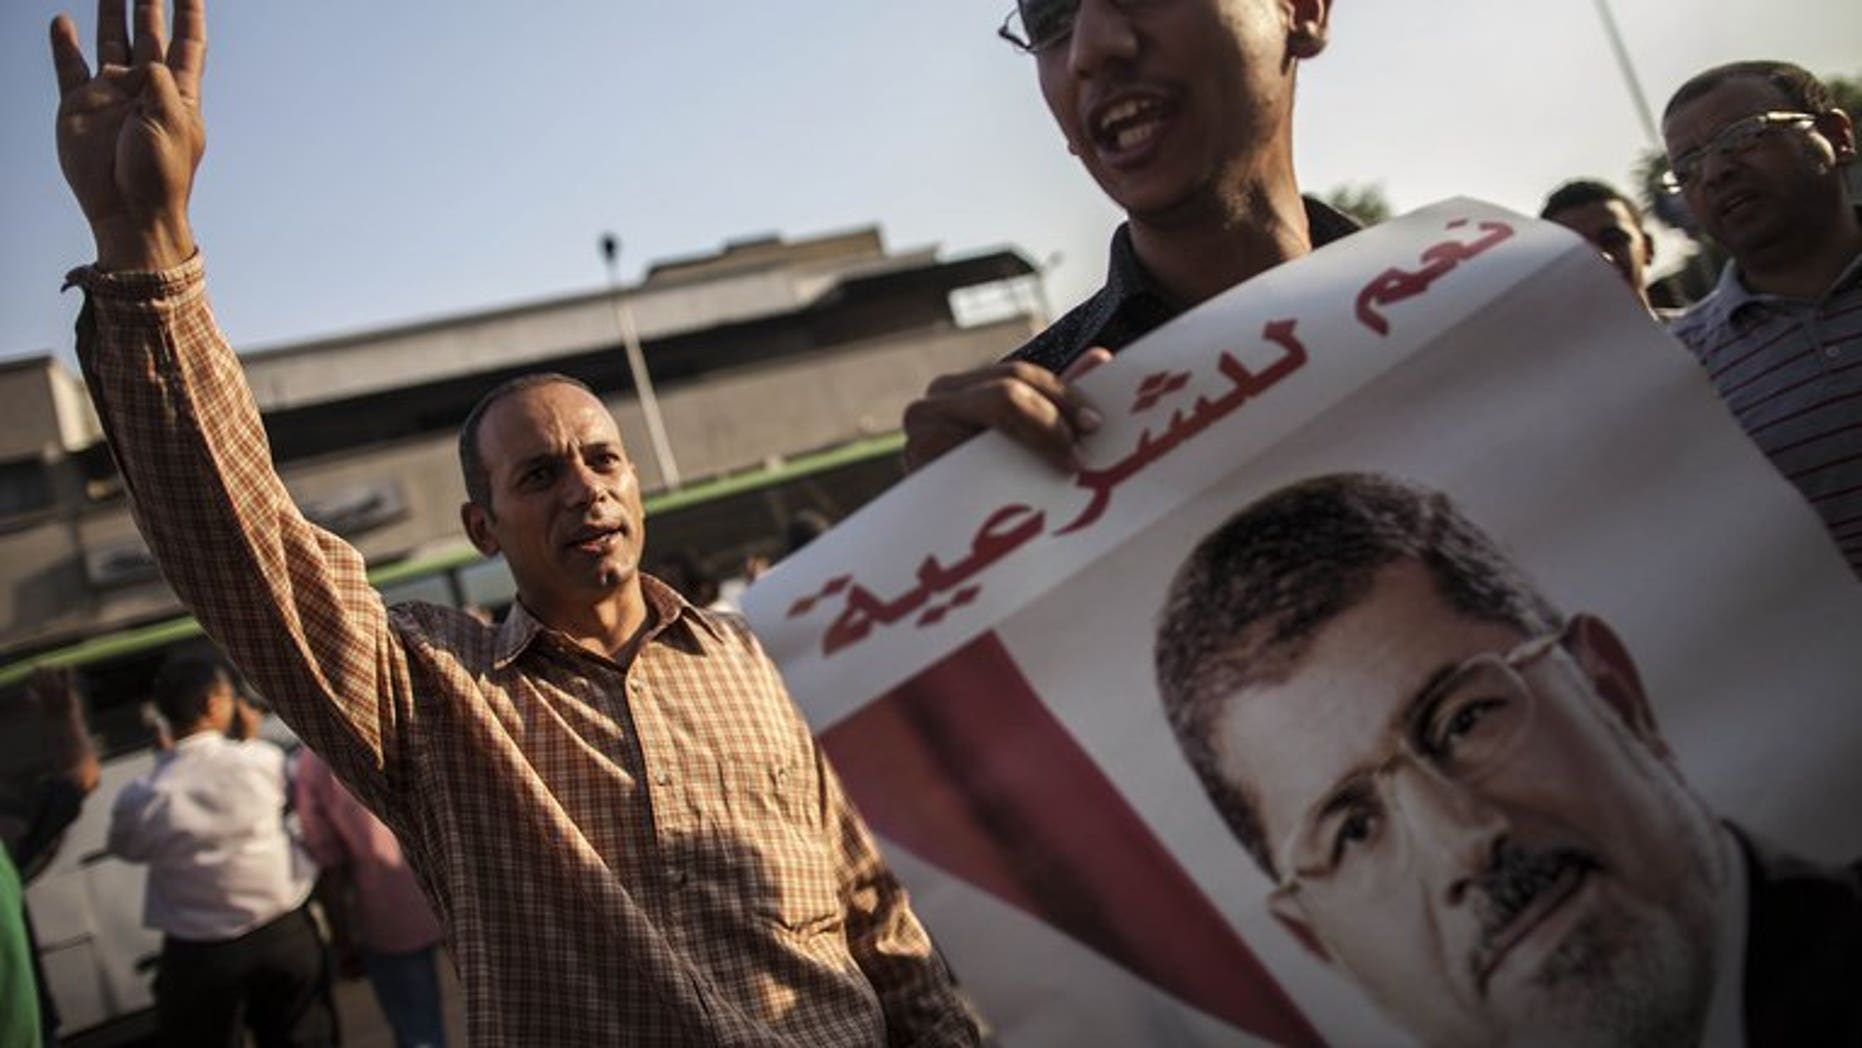 Muslim Brotherhood members and supporters of ousted president Mohammed Morsi show his portrait during a demonstration against the army-installed government on September 10, 2013 in Cairo. Morsi supporters rallied in Cairo after Friday prayers chanting angry slogans against the military, with clashes reported elsewhere in Egypt.